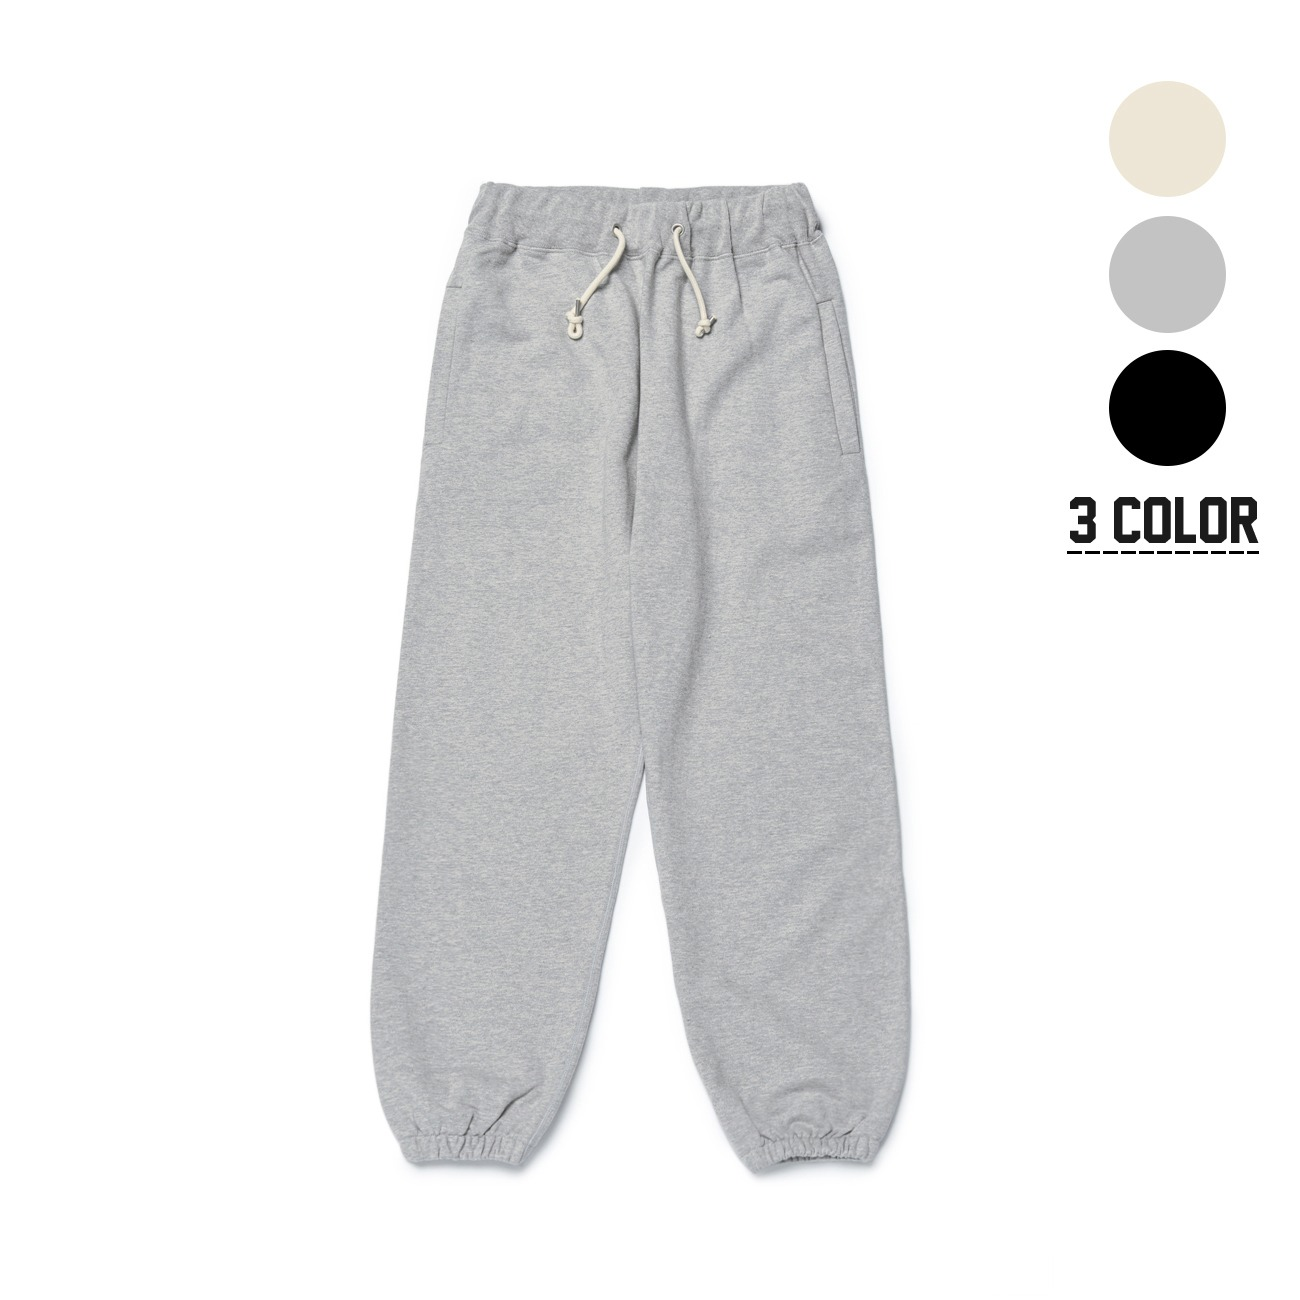 89 Sweat Pants [3 Color]